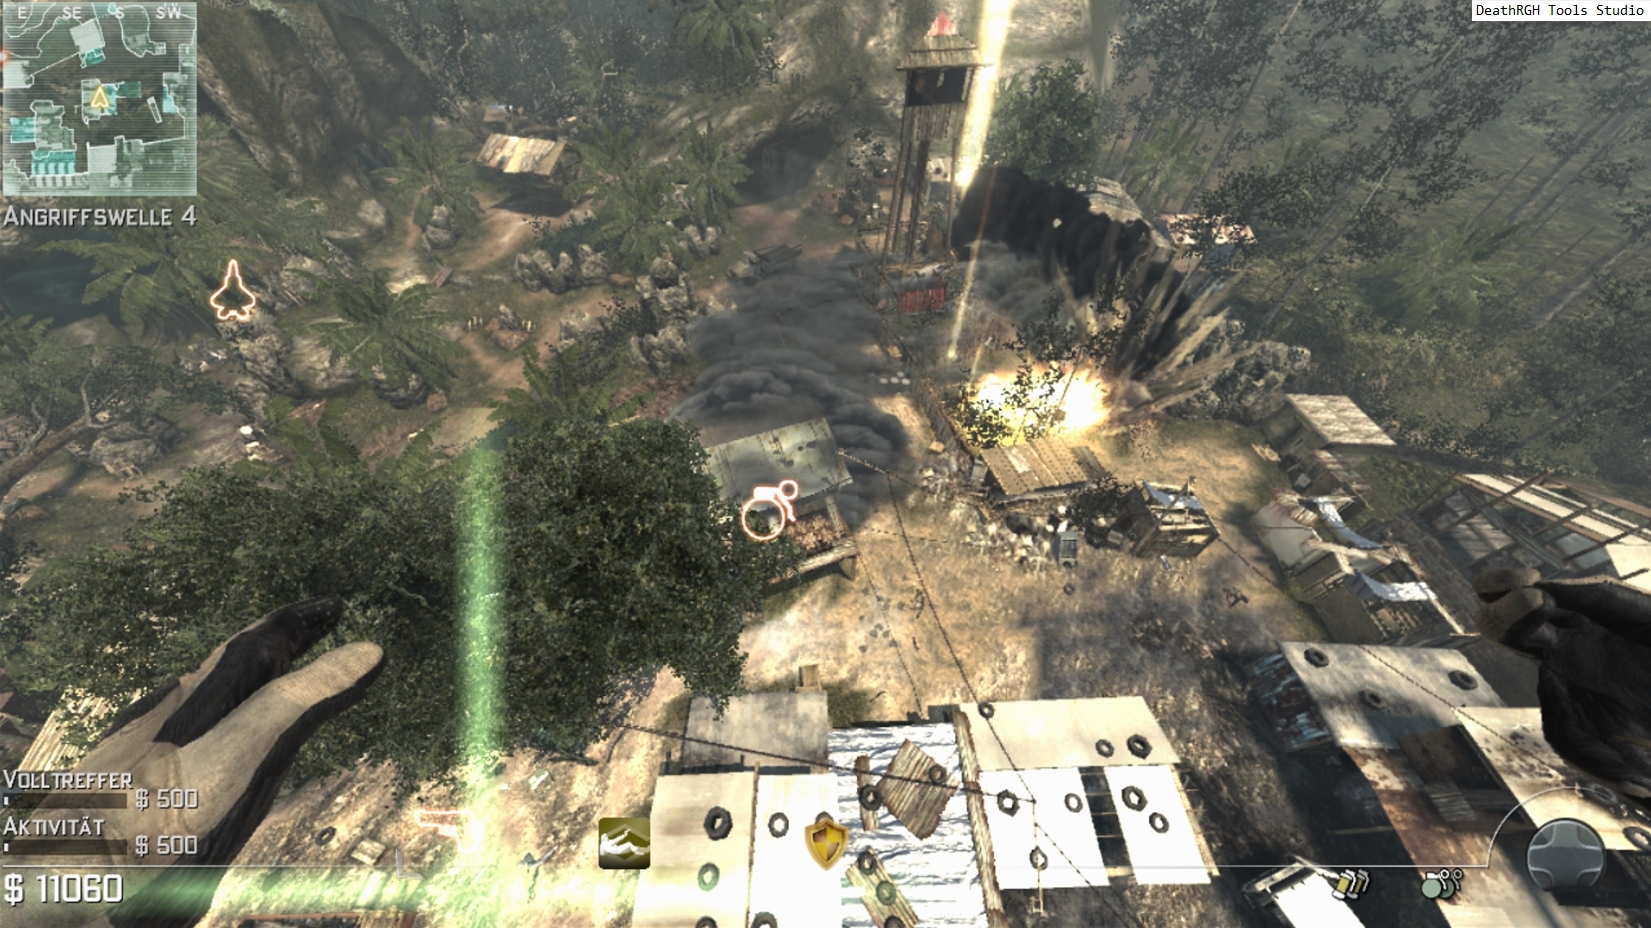 Discussion - MW3 Spec Ops Modding Tool Preview [DeathRGH Tools